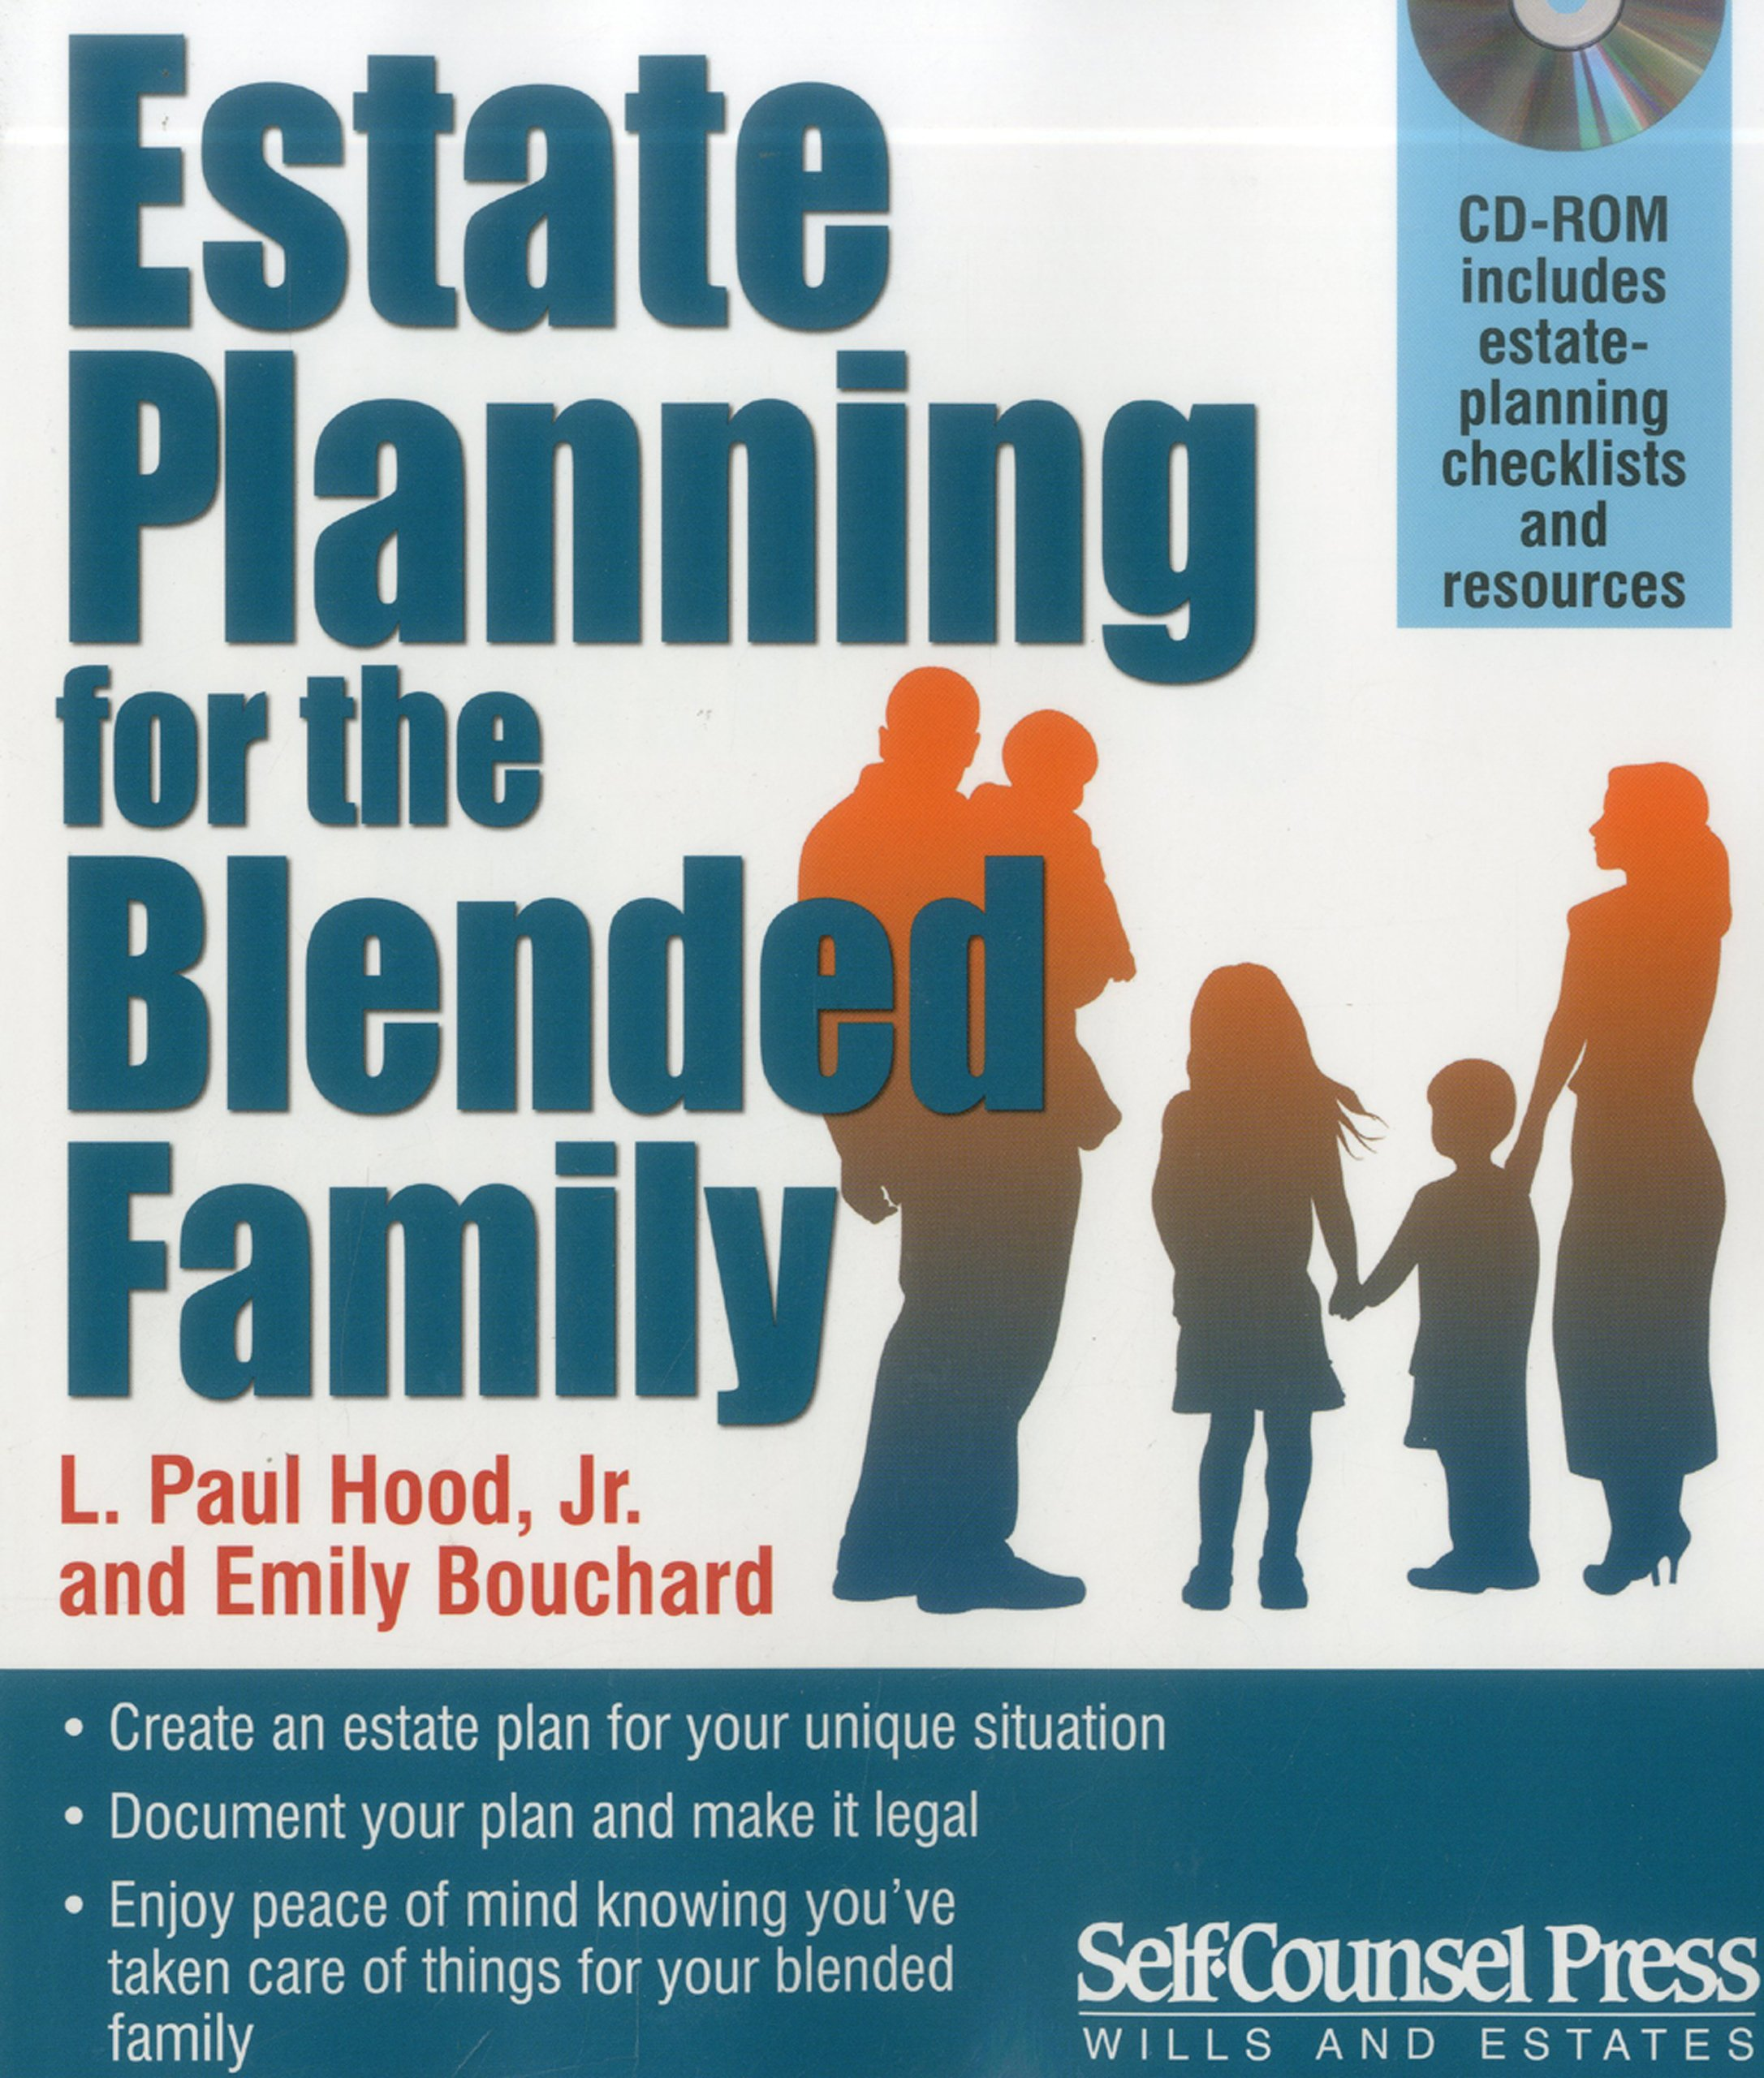 Estate Planning for the Blended Family (Wills and Estates)